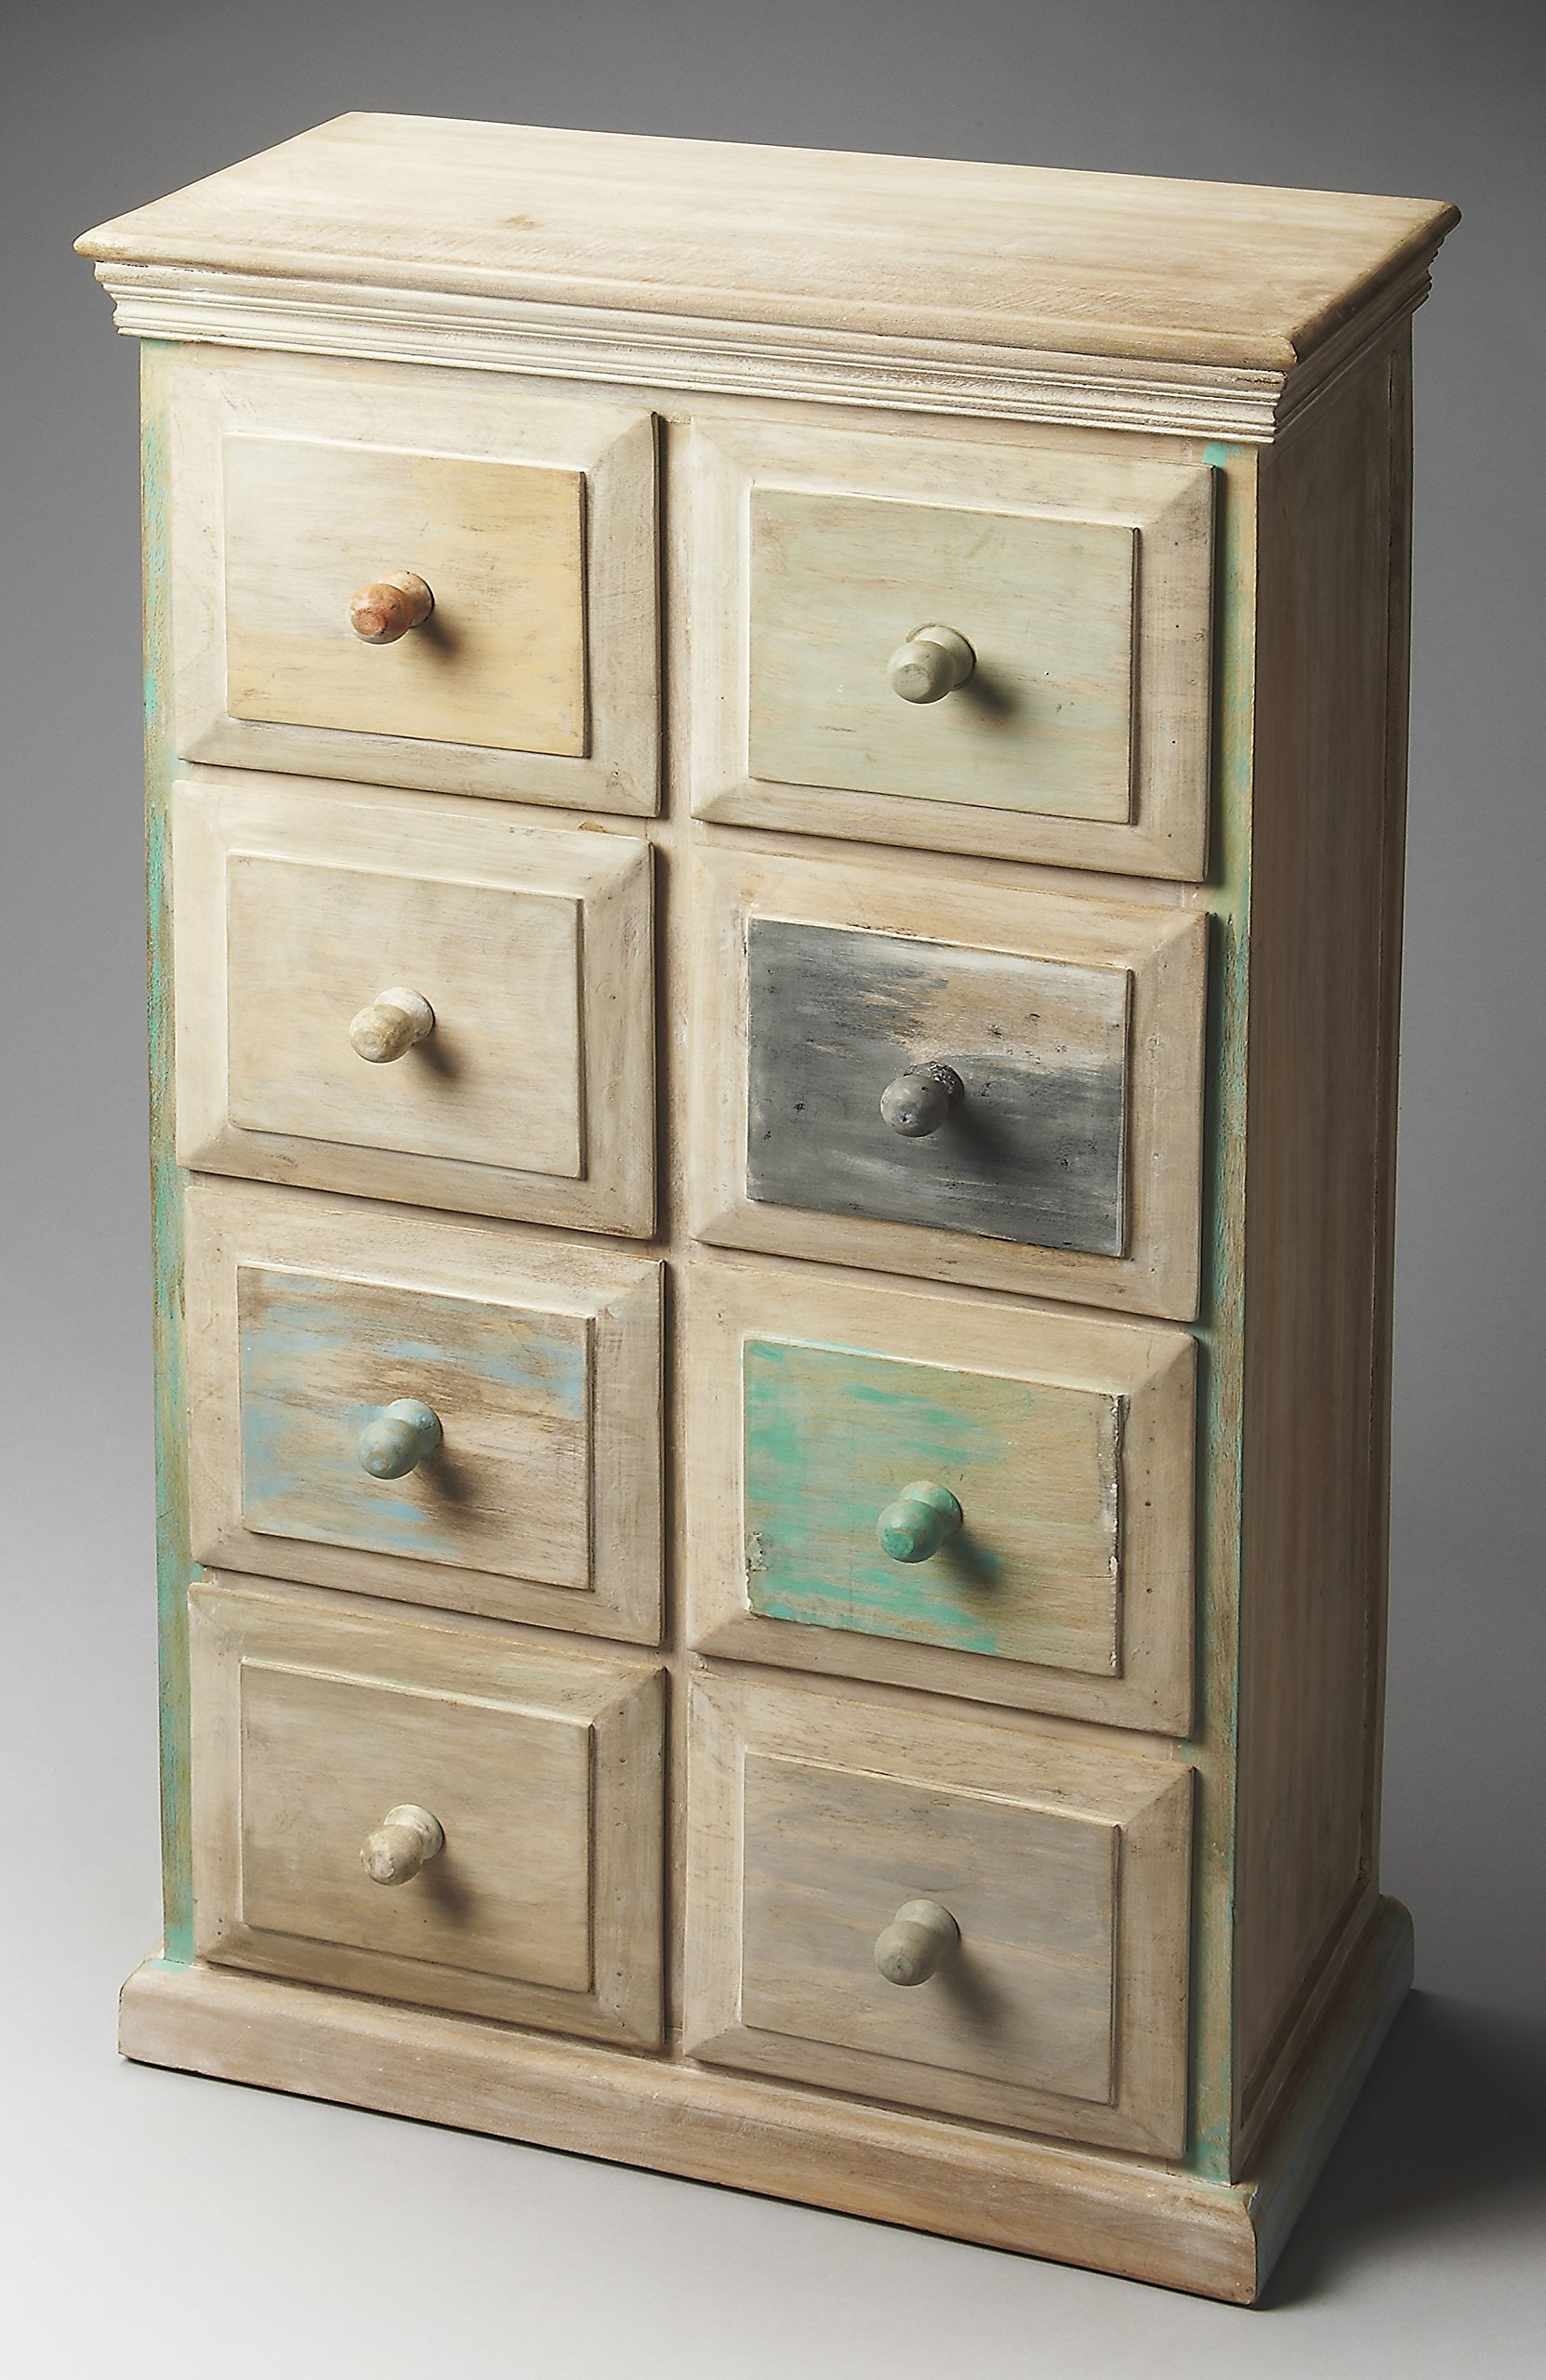 Recycled Crafted Chest with Drawer 543155